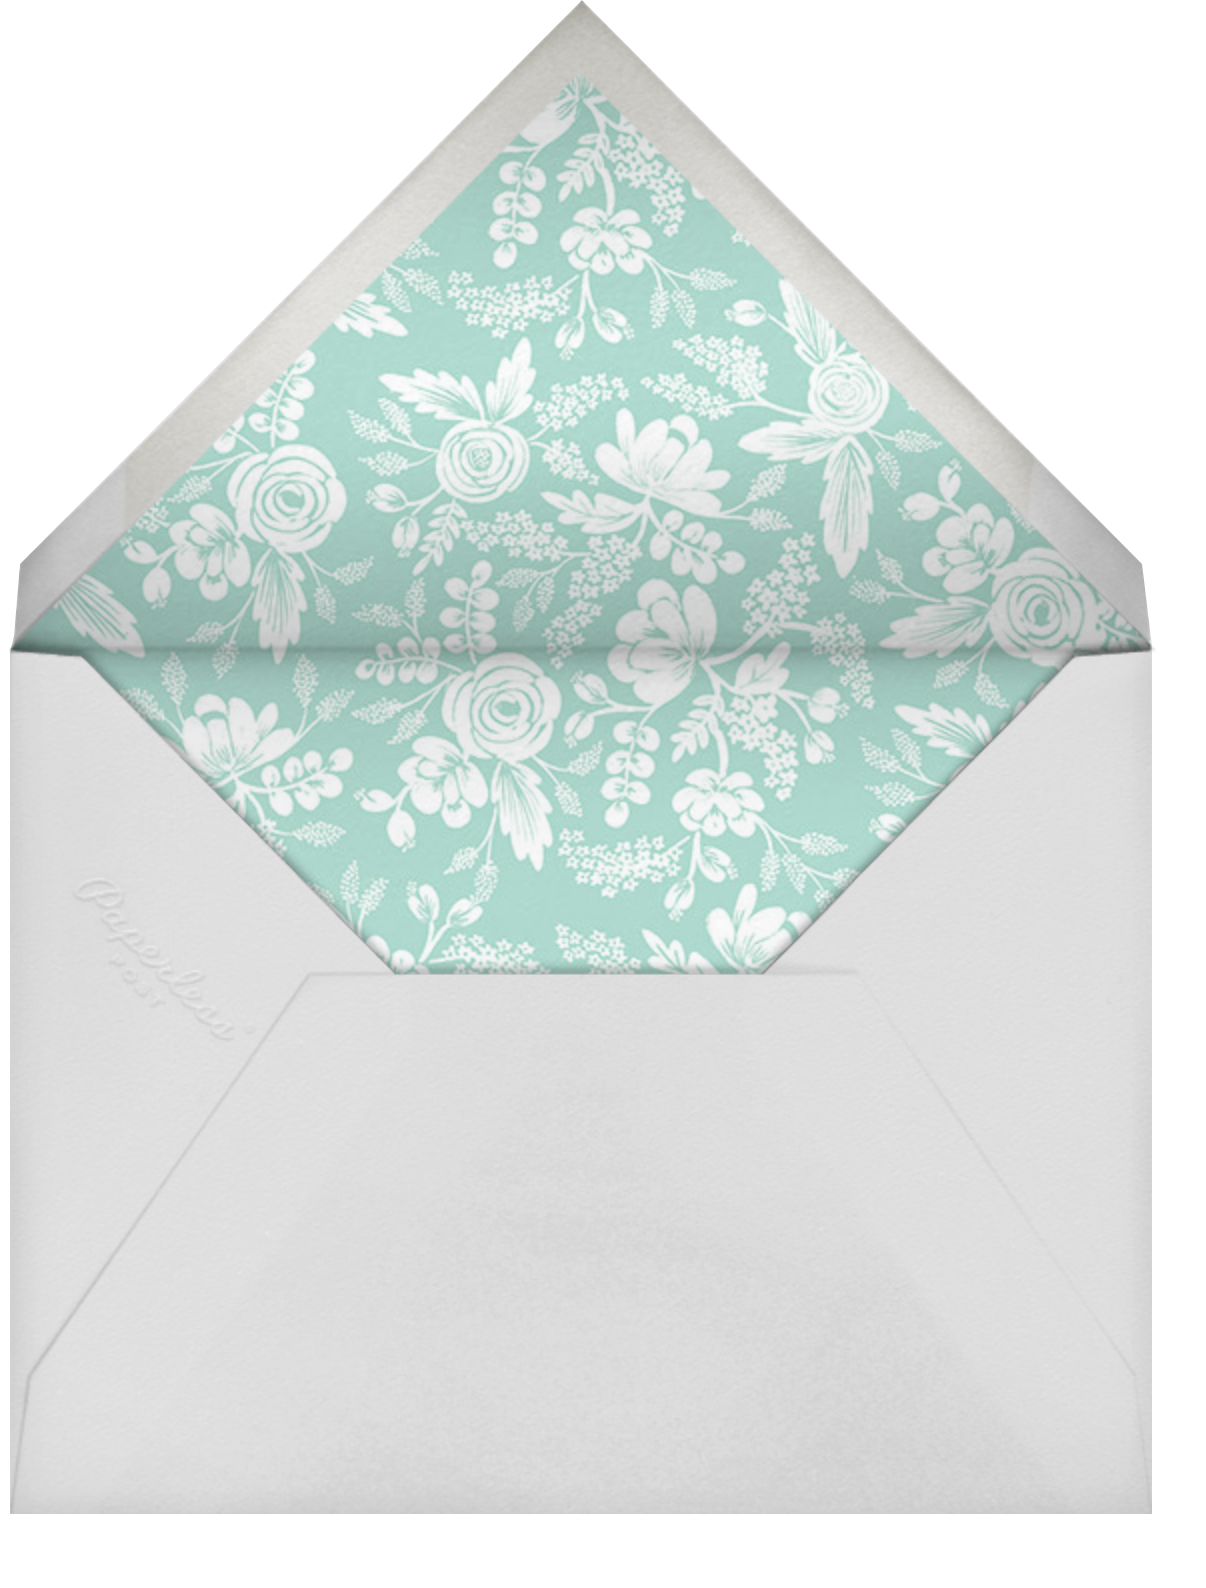 Heather and Lace (Tall Frame) - Silver/Celadon - Rifle Paper Co. - Envelope